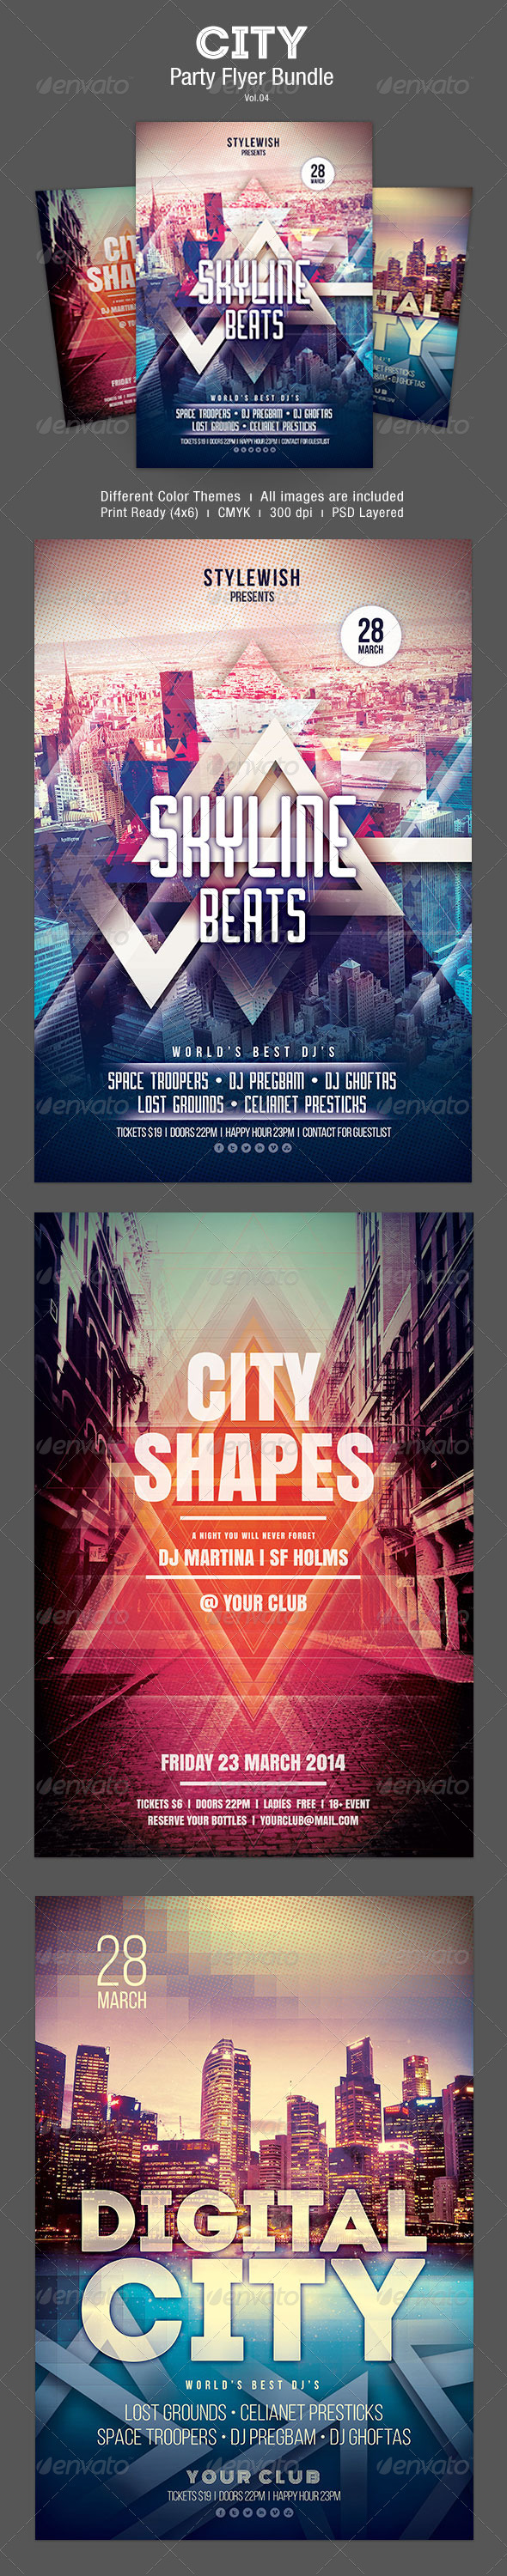 City Party Flyer Bundle Vol.04 - Clubs & Parties Events